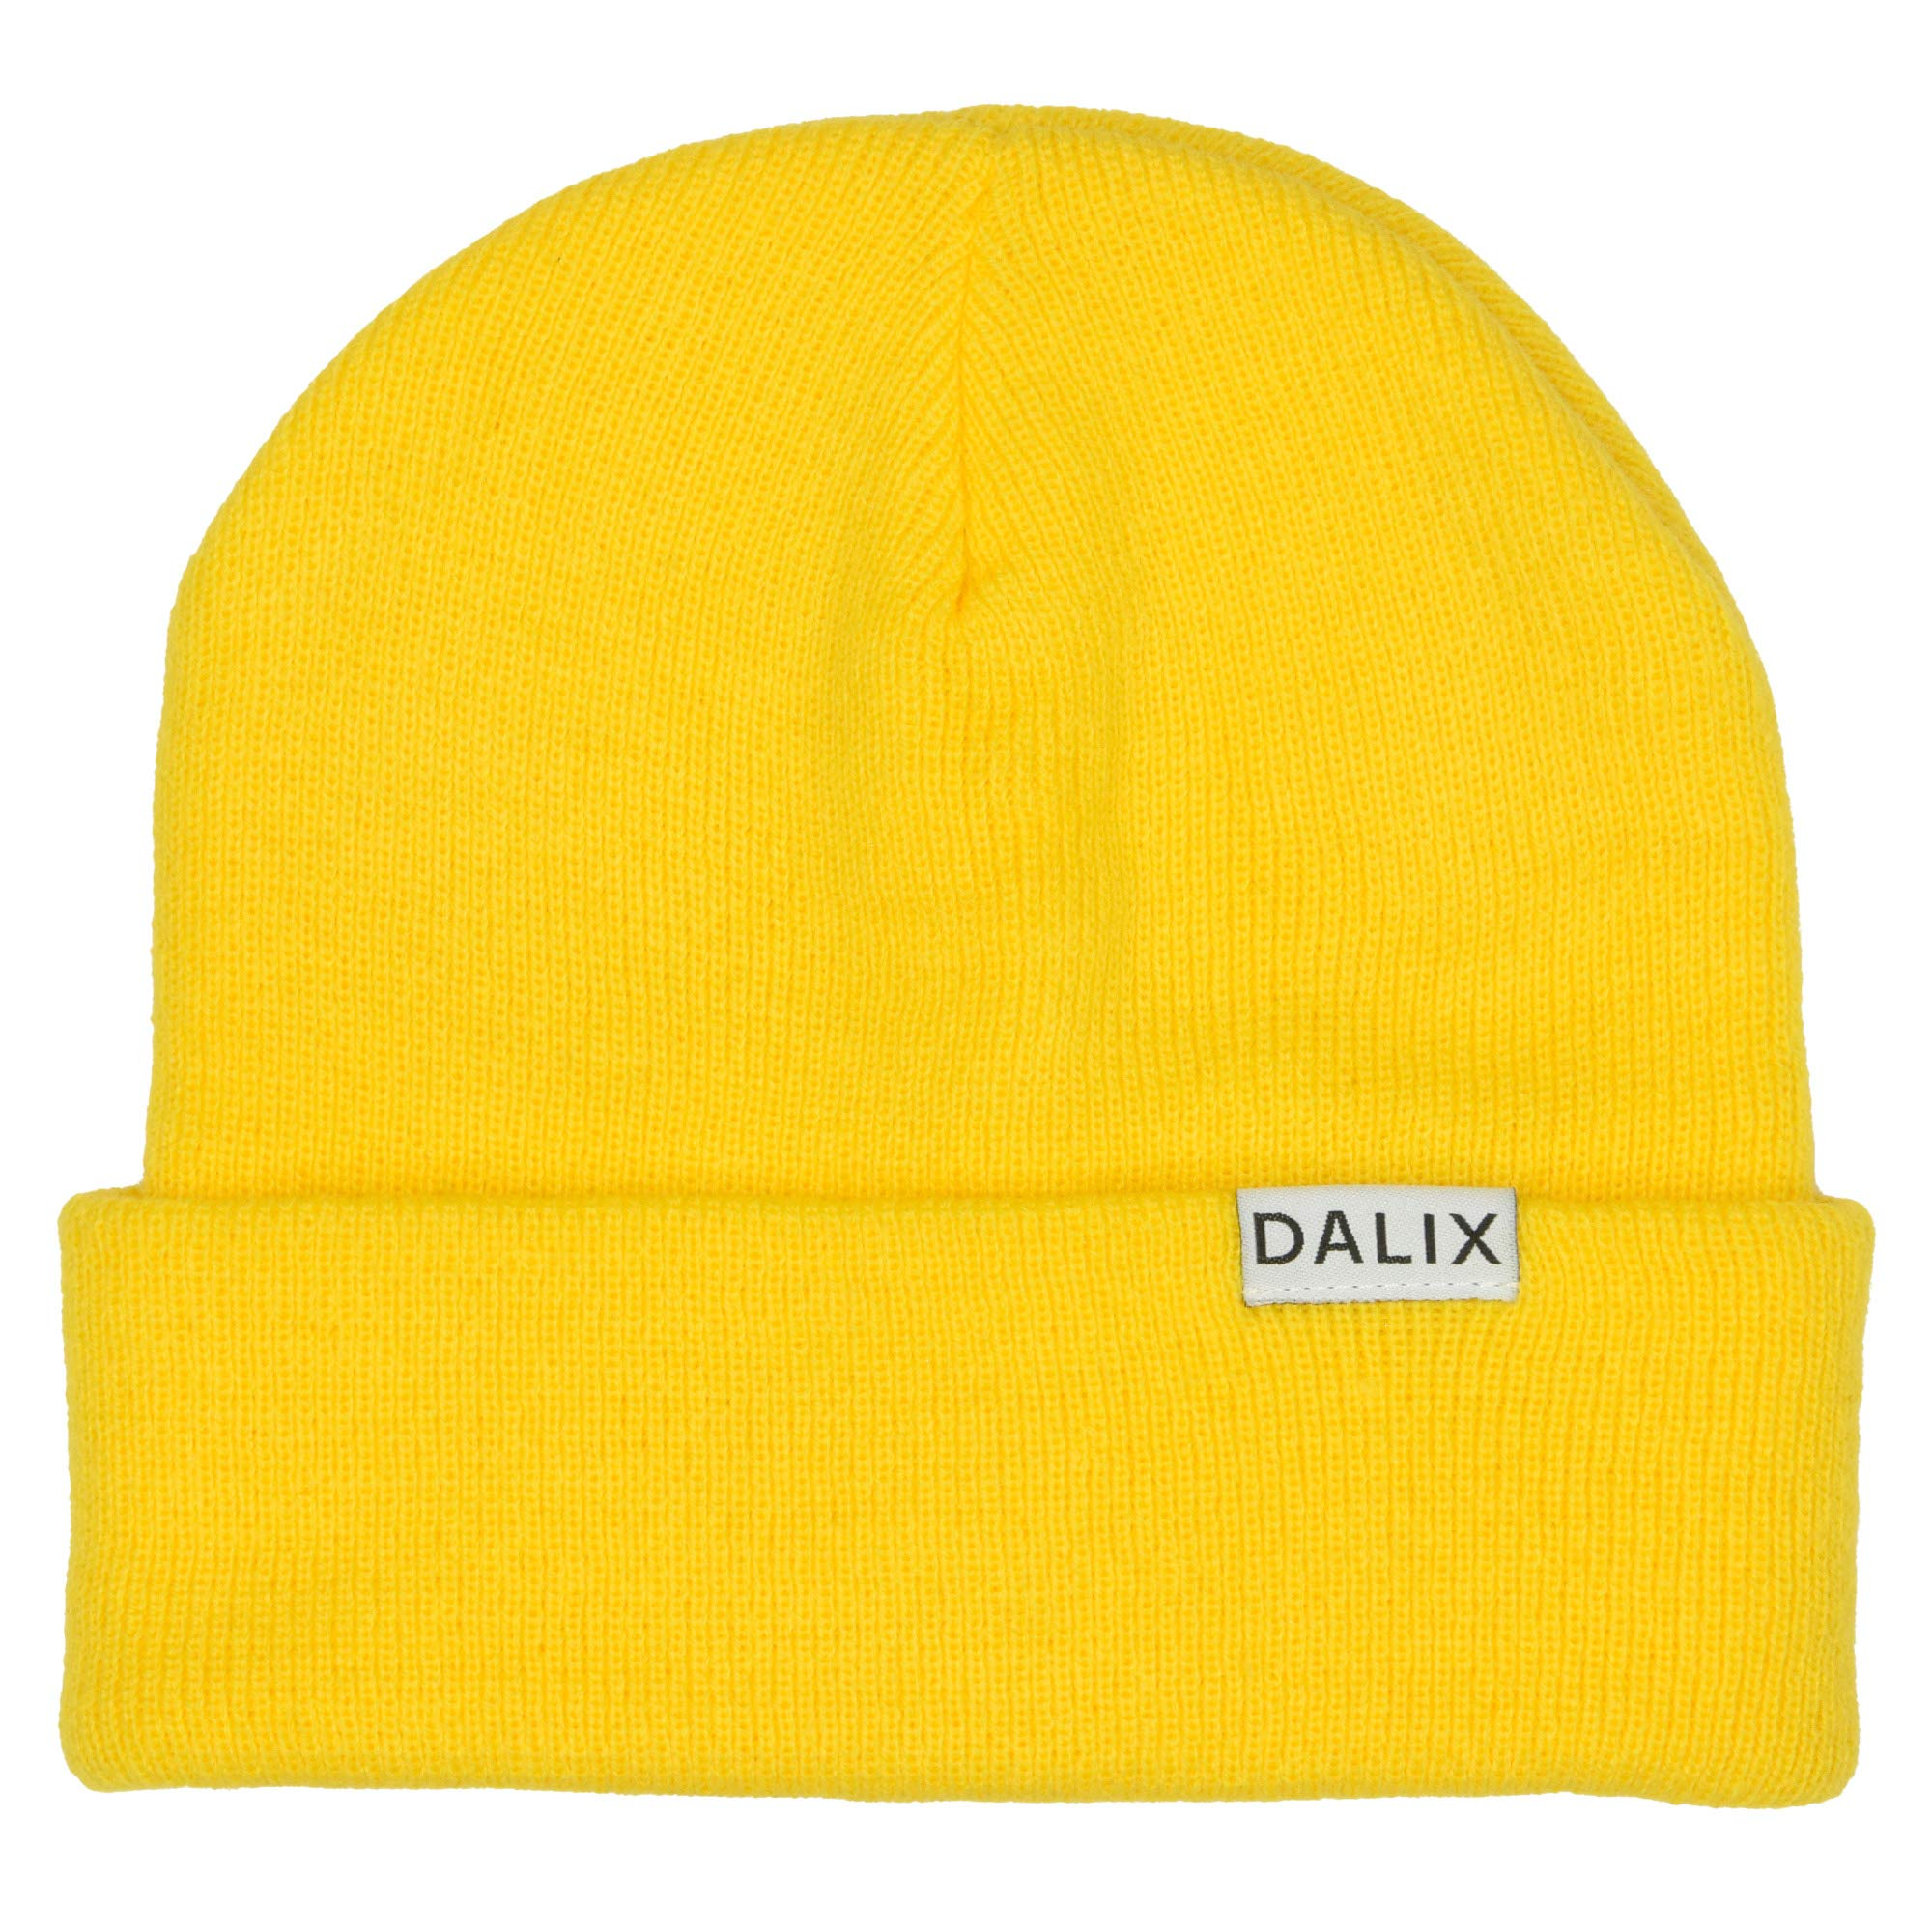 """DALIX Cuff Beanie Cap 12"""" Royal Red Black Navy Blue Orange Lime Green White Canary Yellow Pink Camo"""